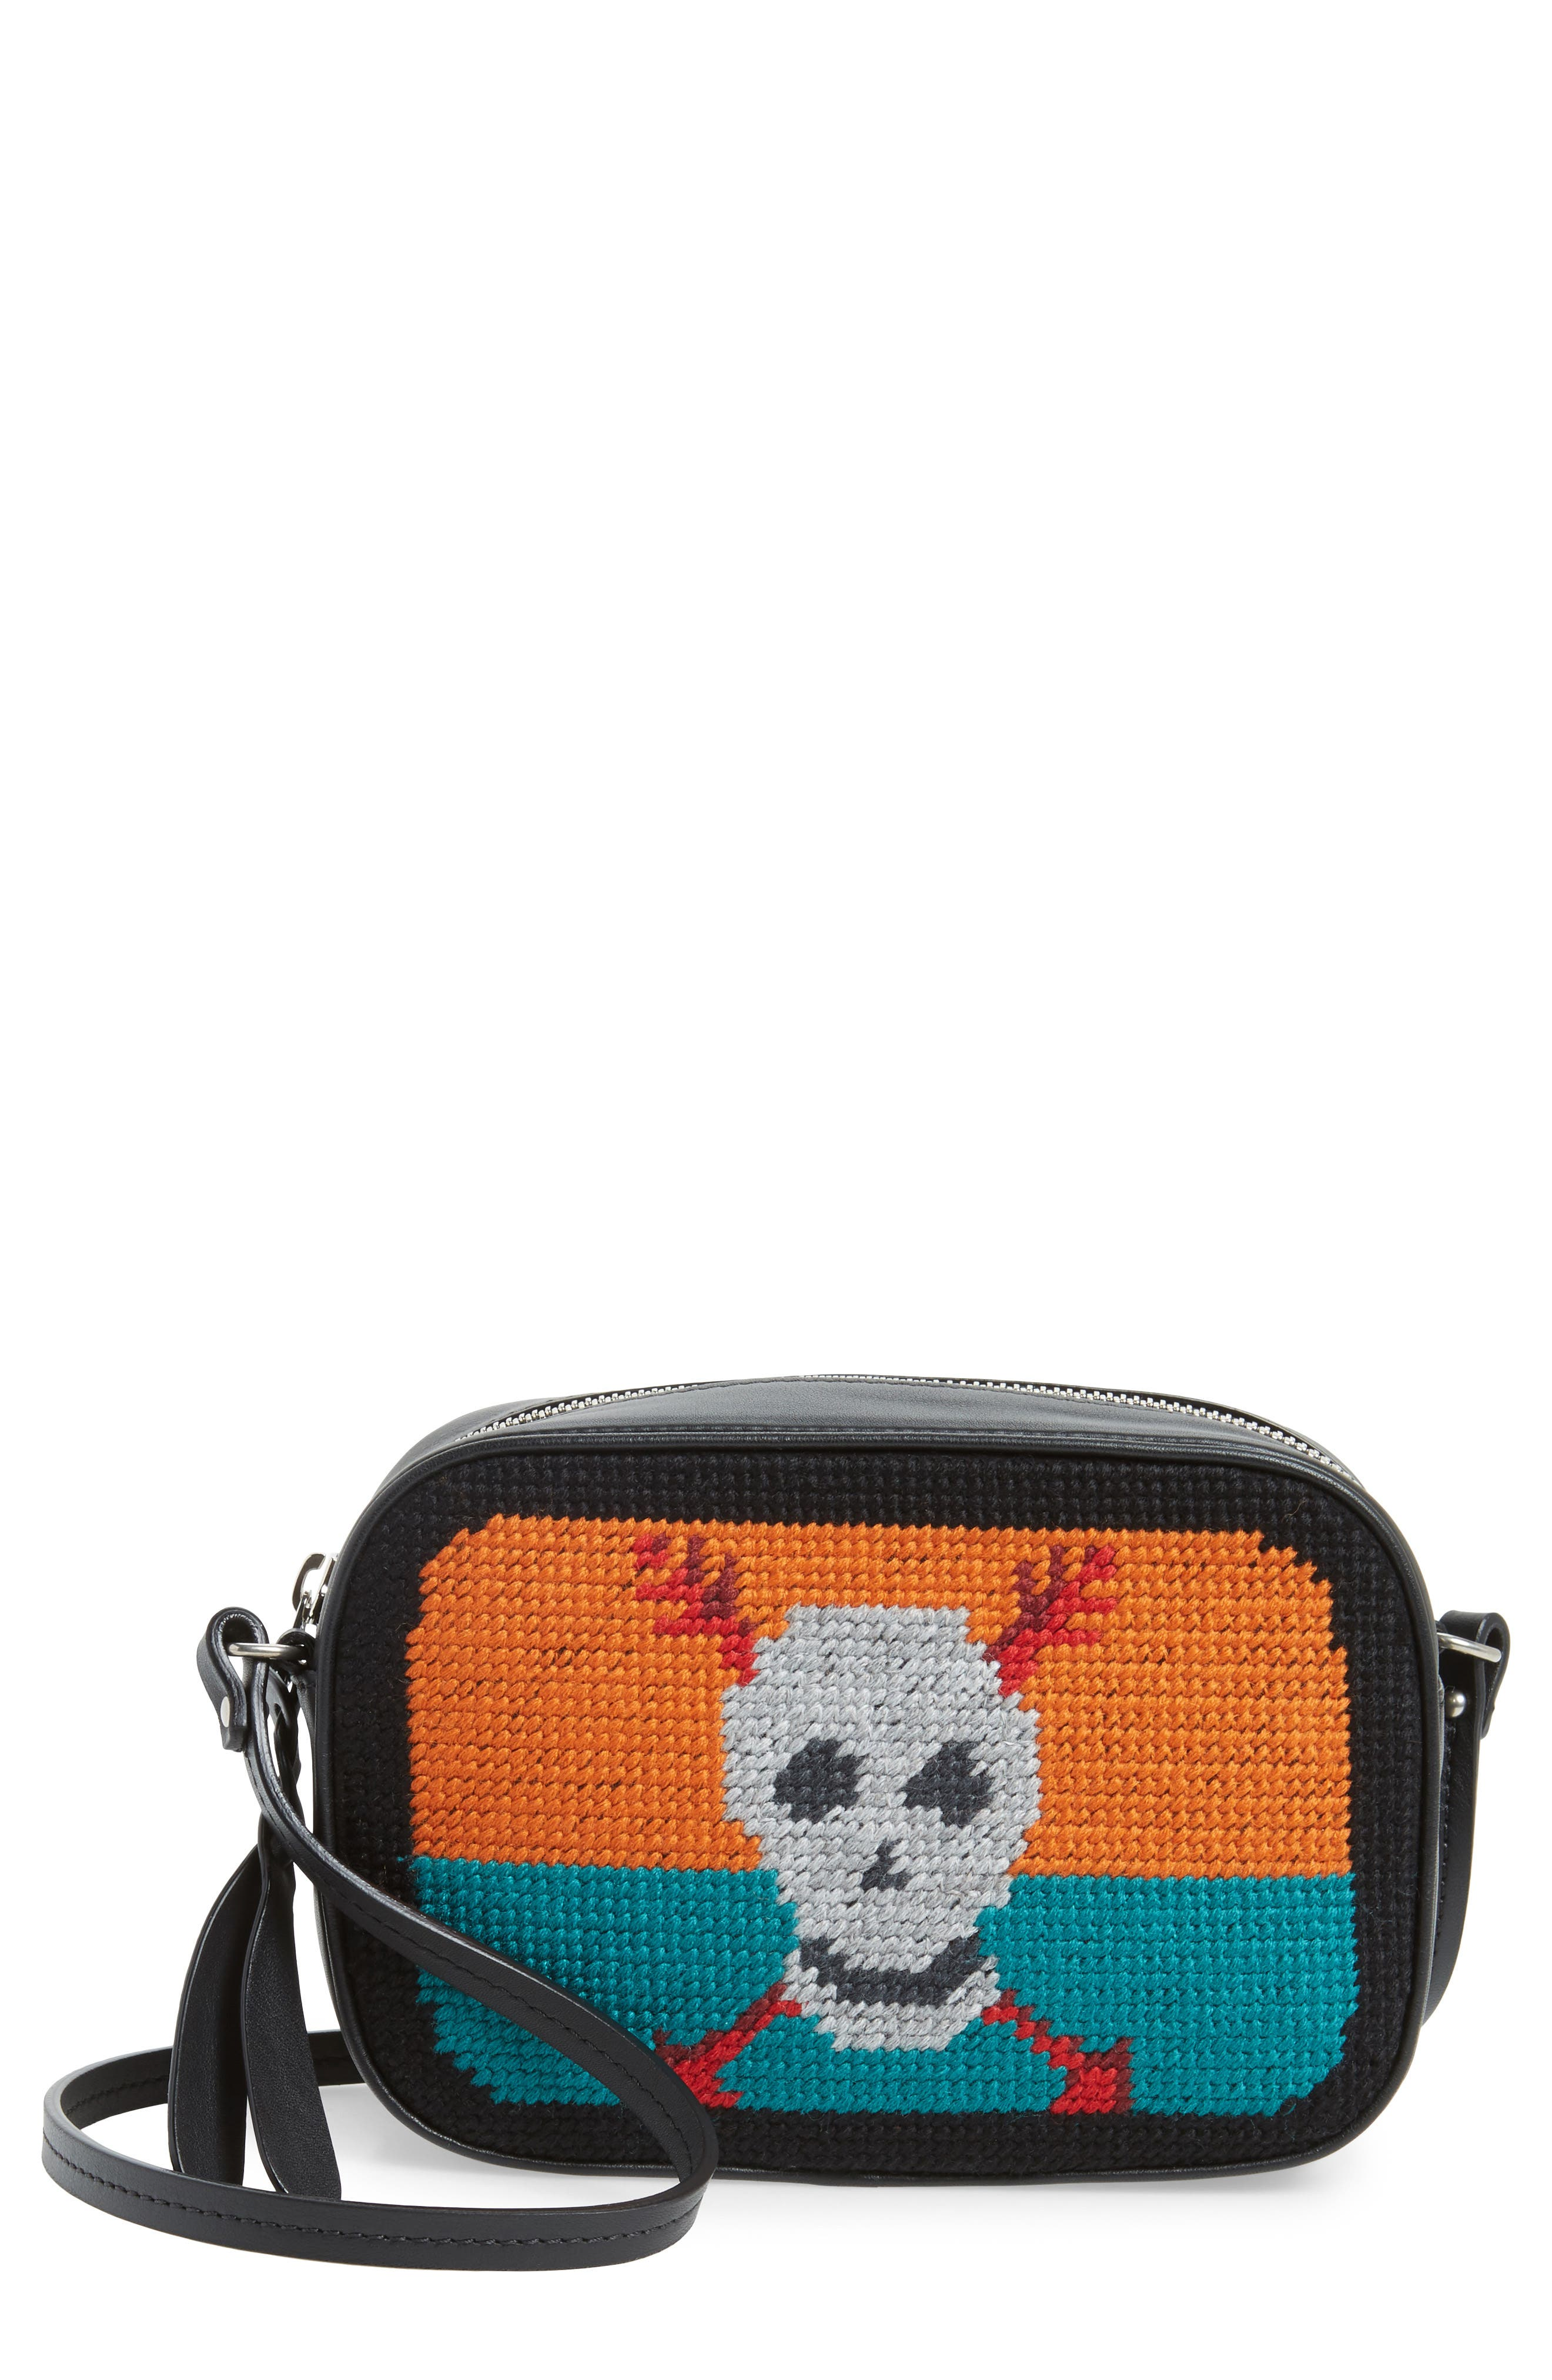 Small Embroidered Leather Camera Bag,                             Main thumbnail 1, color,                             Black Multicolor